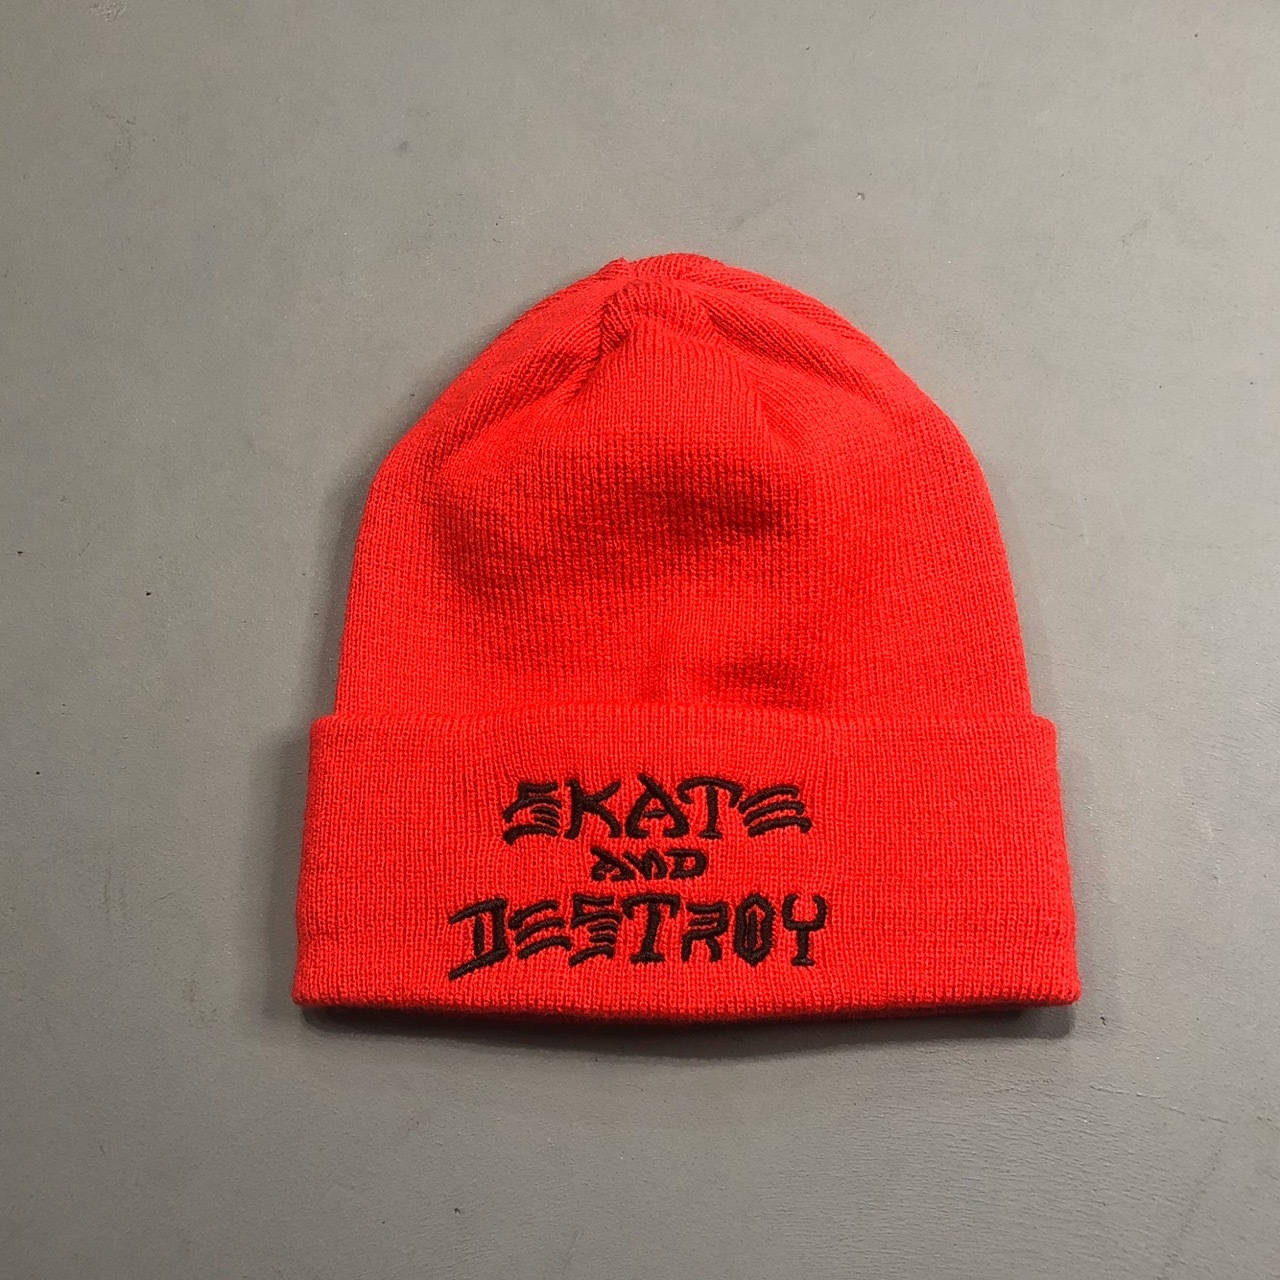 Шапка Thrasher Skate and Destroy Embroidered Beanie Red